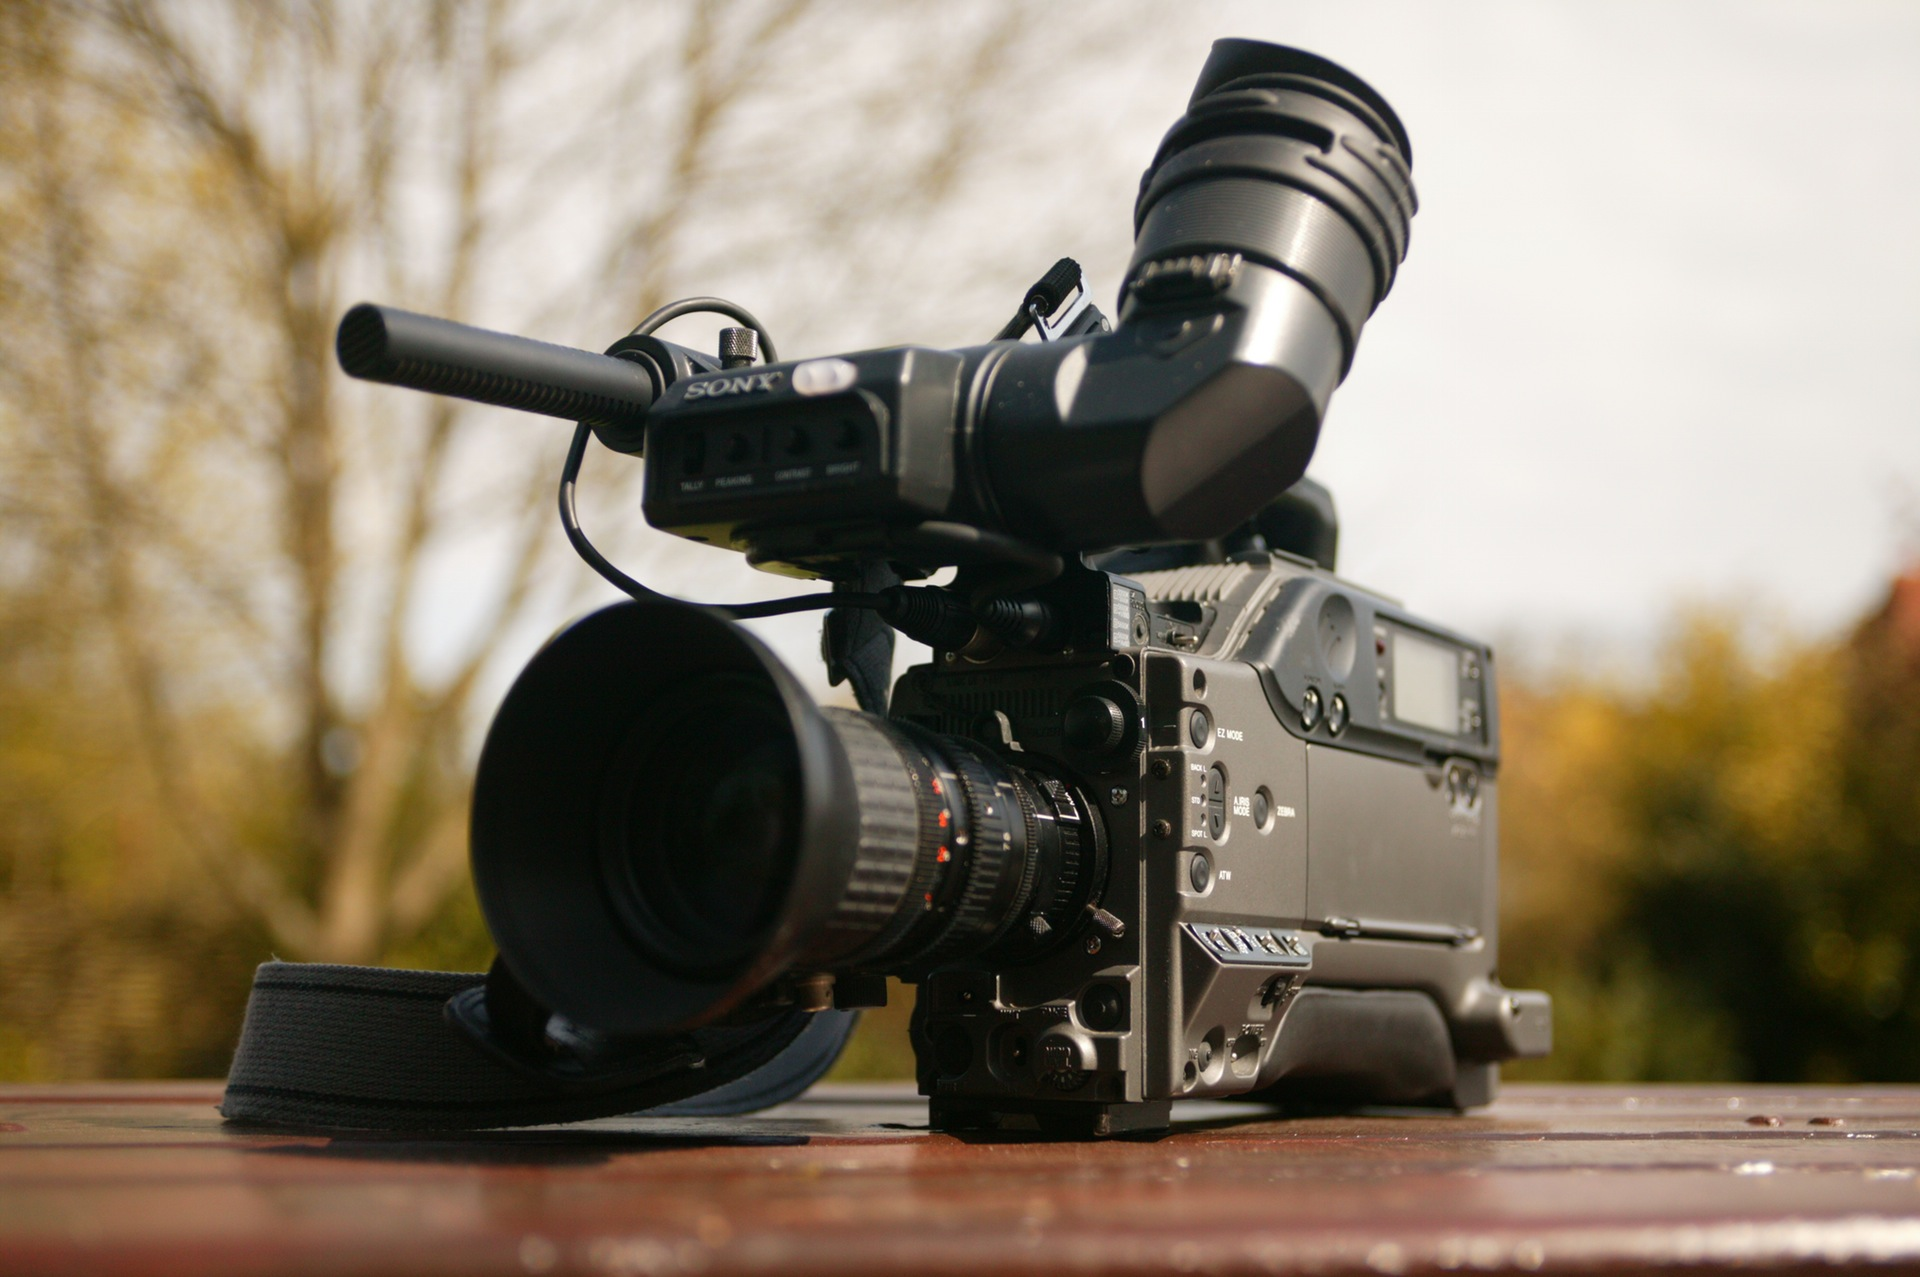 What to Ask When Hiring a Legal Videographer